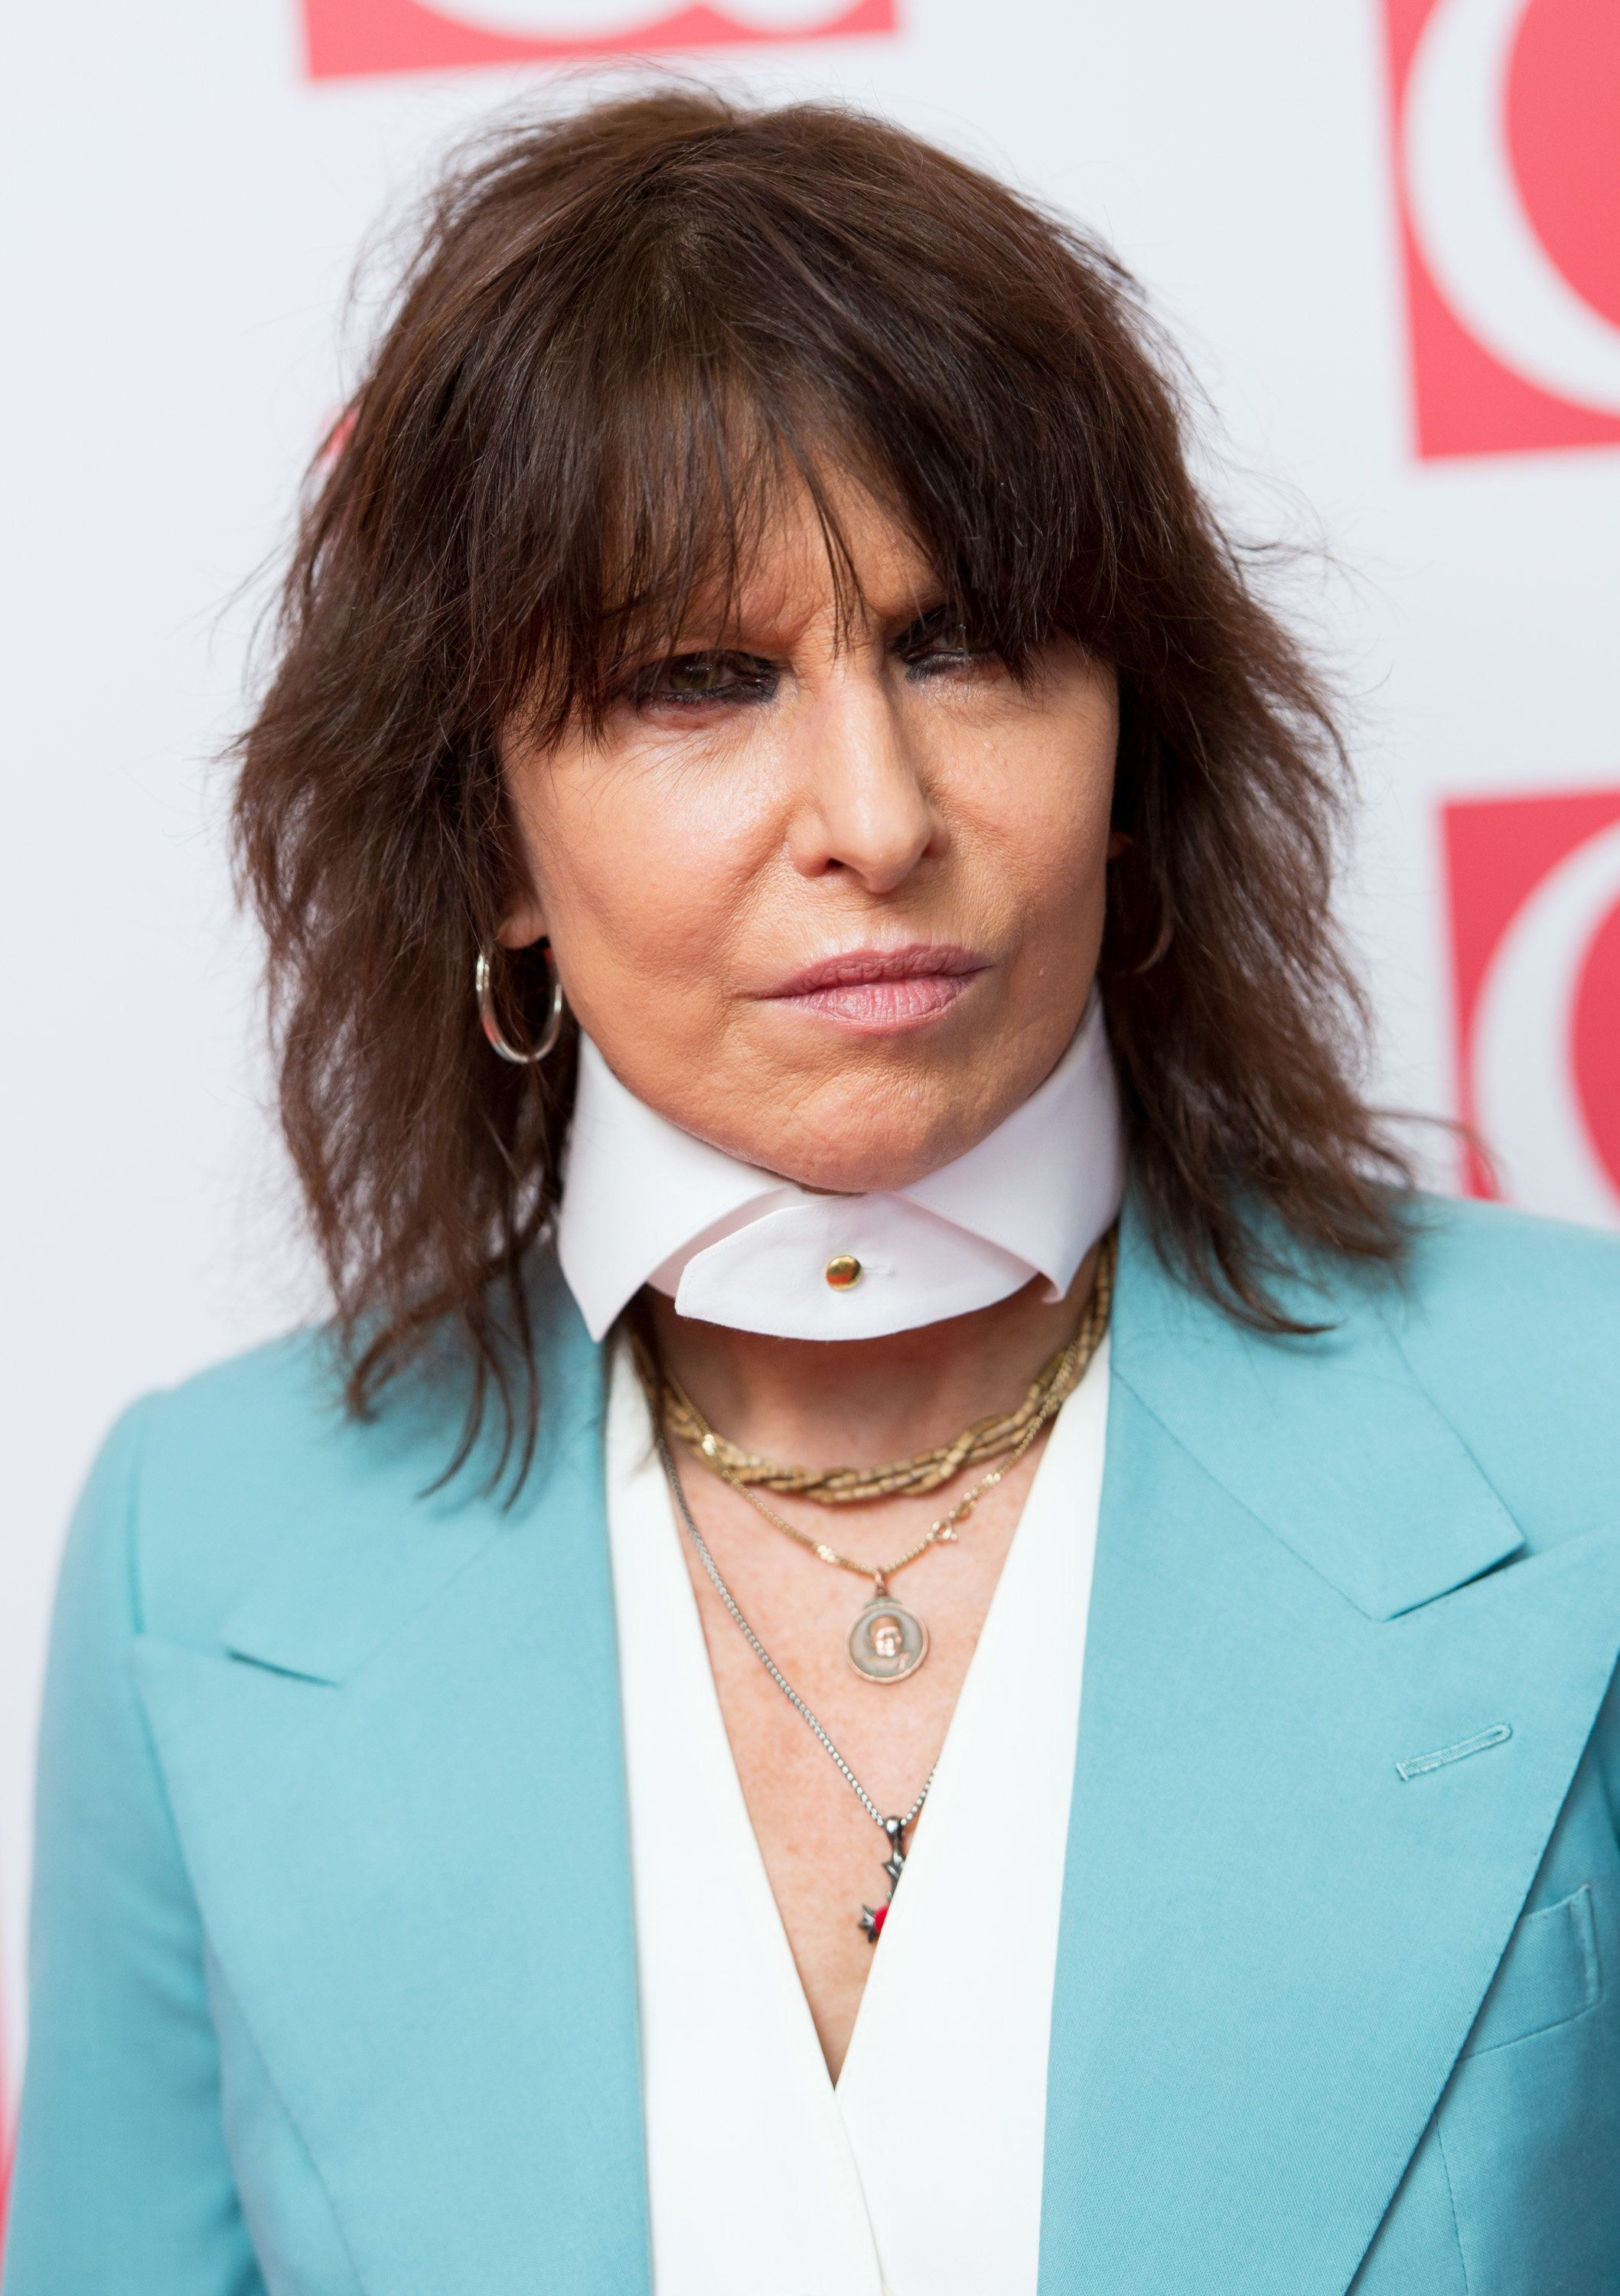 LONDON, ENGLAND - OCTOBER 21:  Chrissie Hynde attends The Q Awards at The Grosvenor House Hotel on October 21, 2013 in London, England.  (Photo by Ian Gavan/Getty Images)